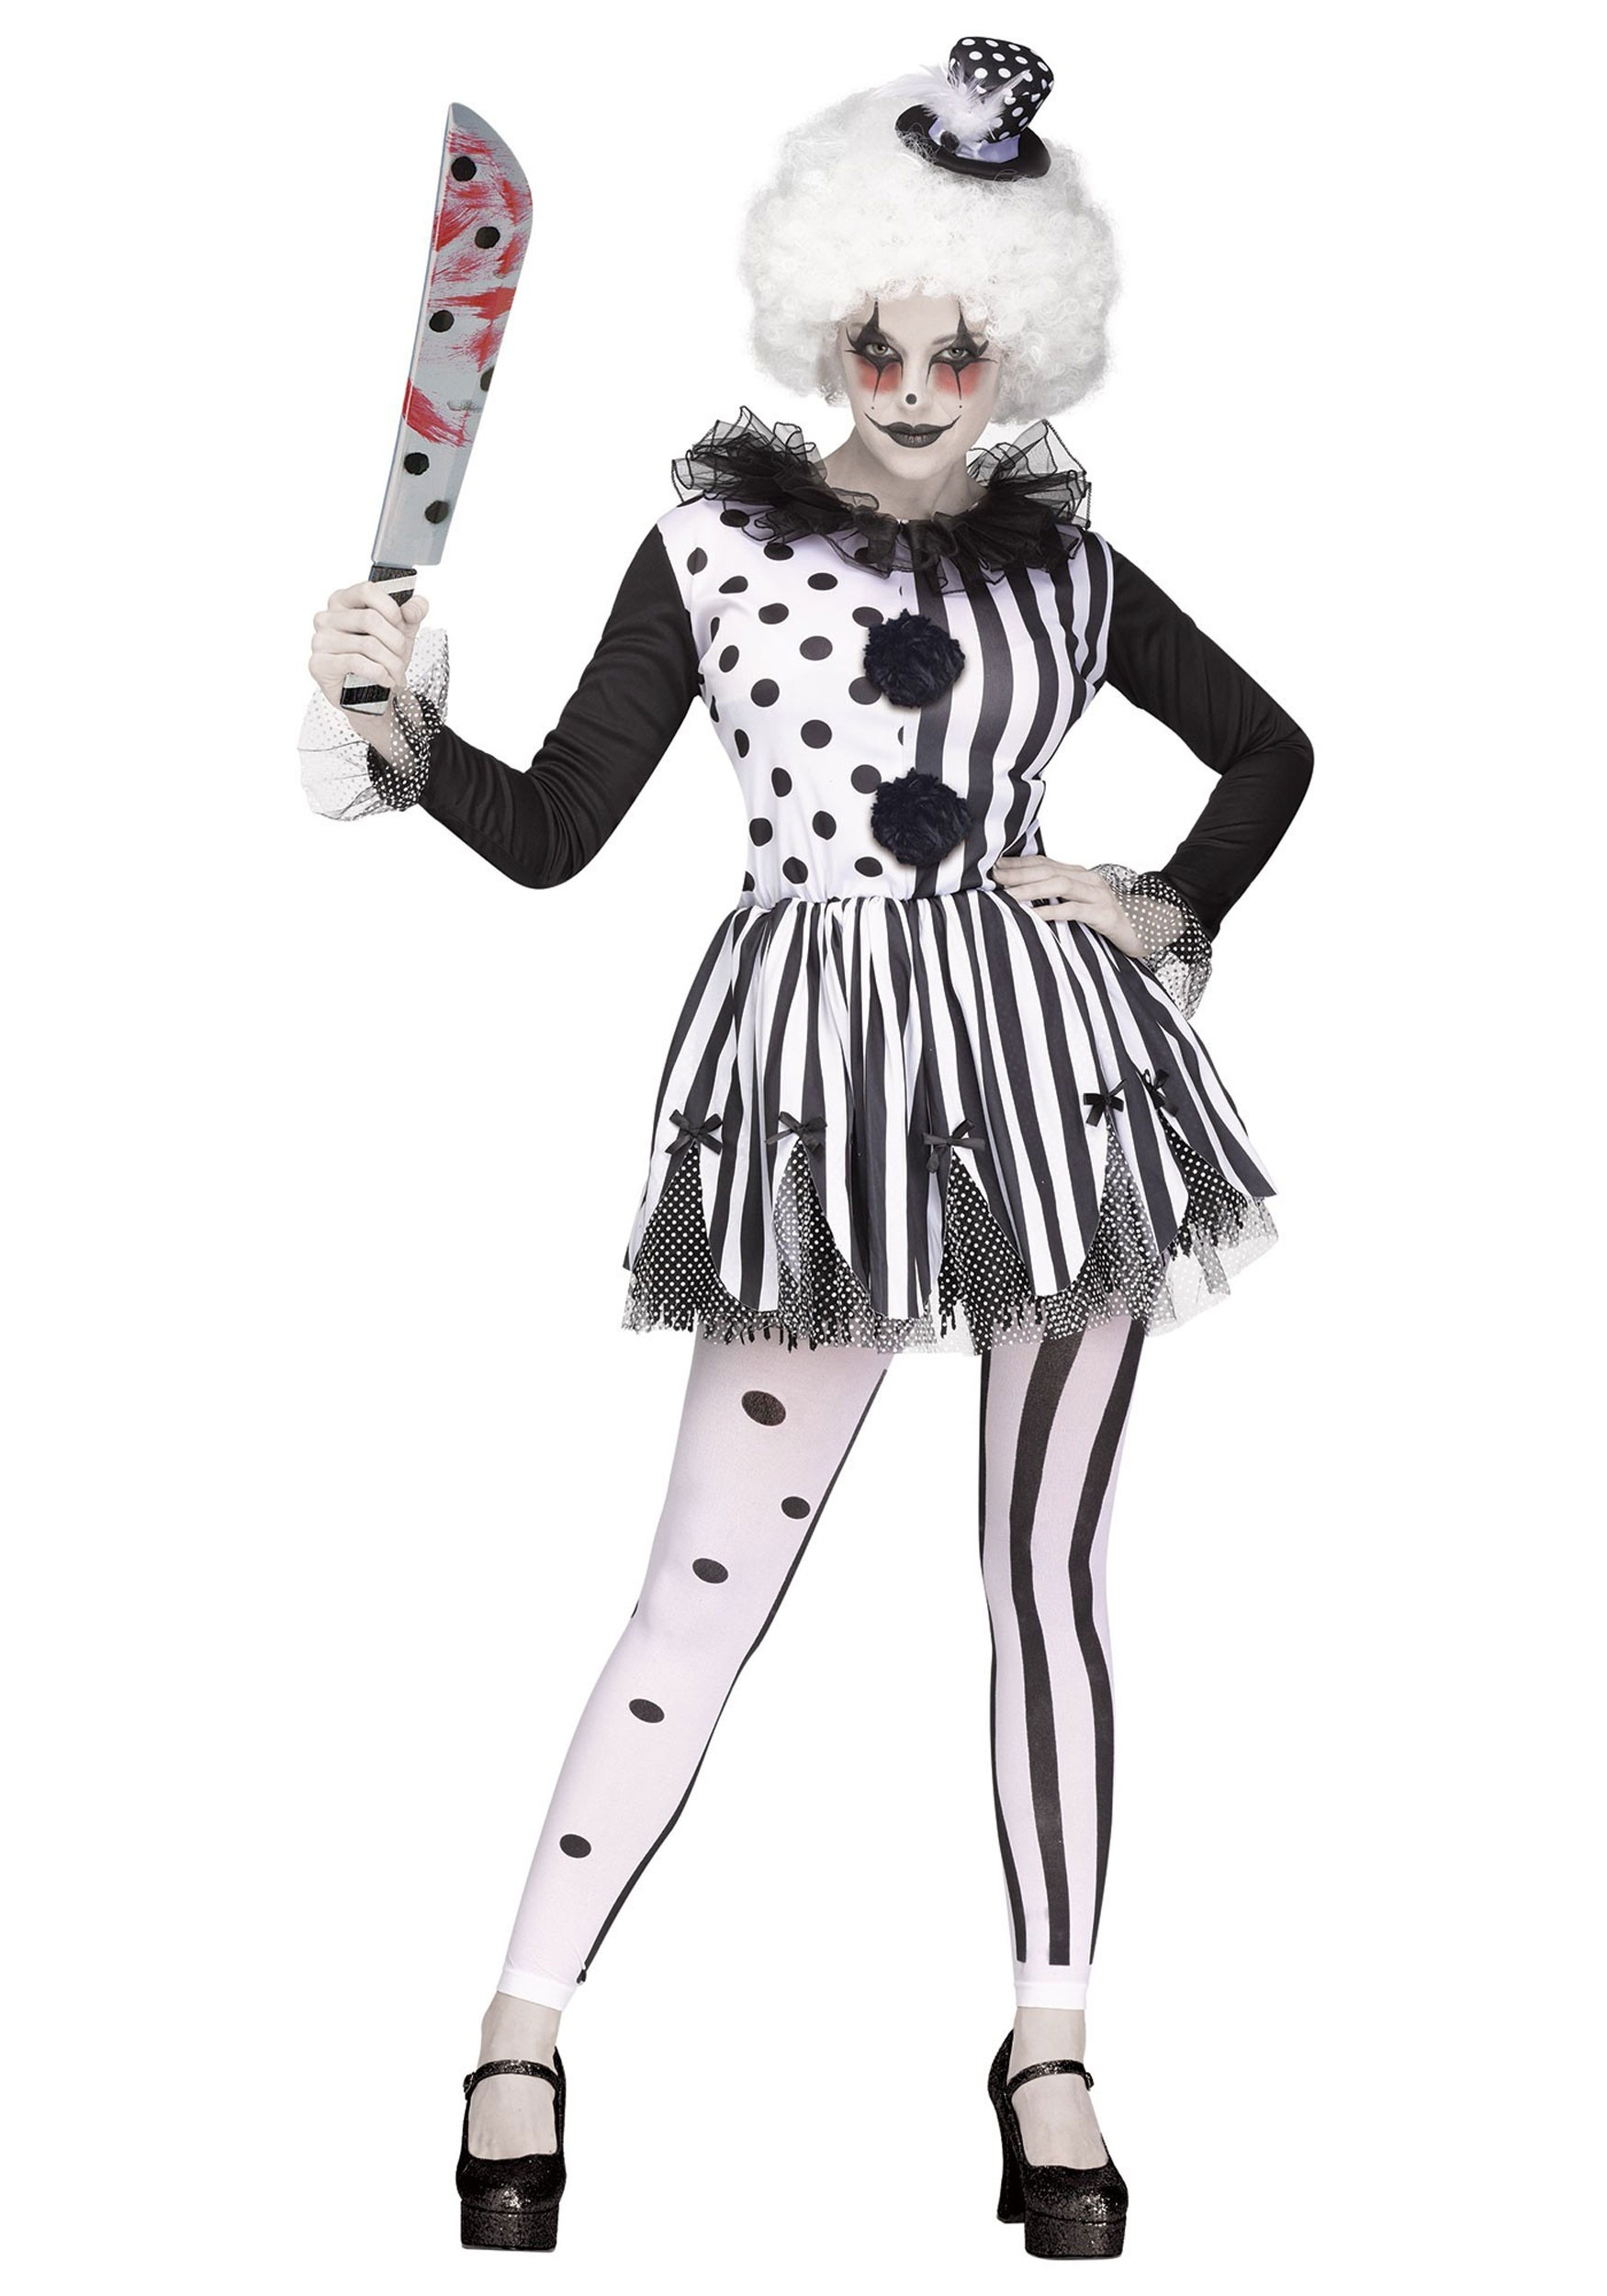 TEEN KILLER CLOWN COSTUME HORROR SCARY JESTER GIRLS HALLOWEEN FANCY DRESS